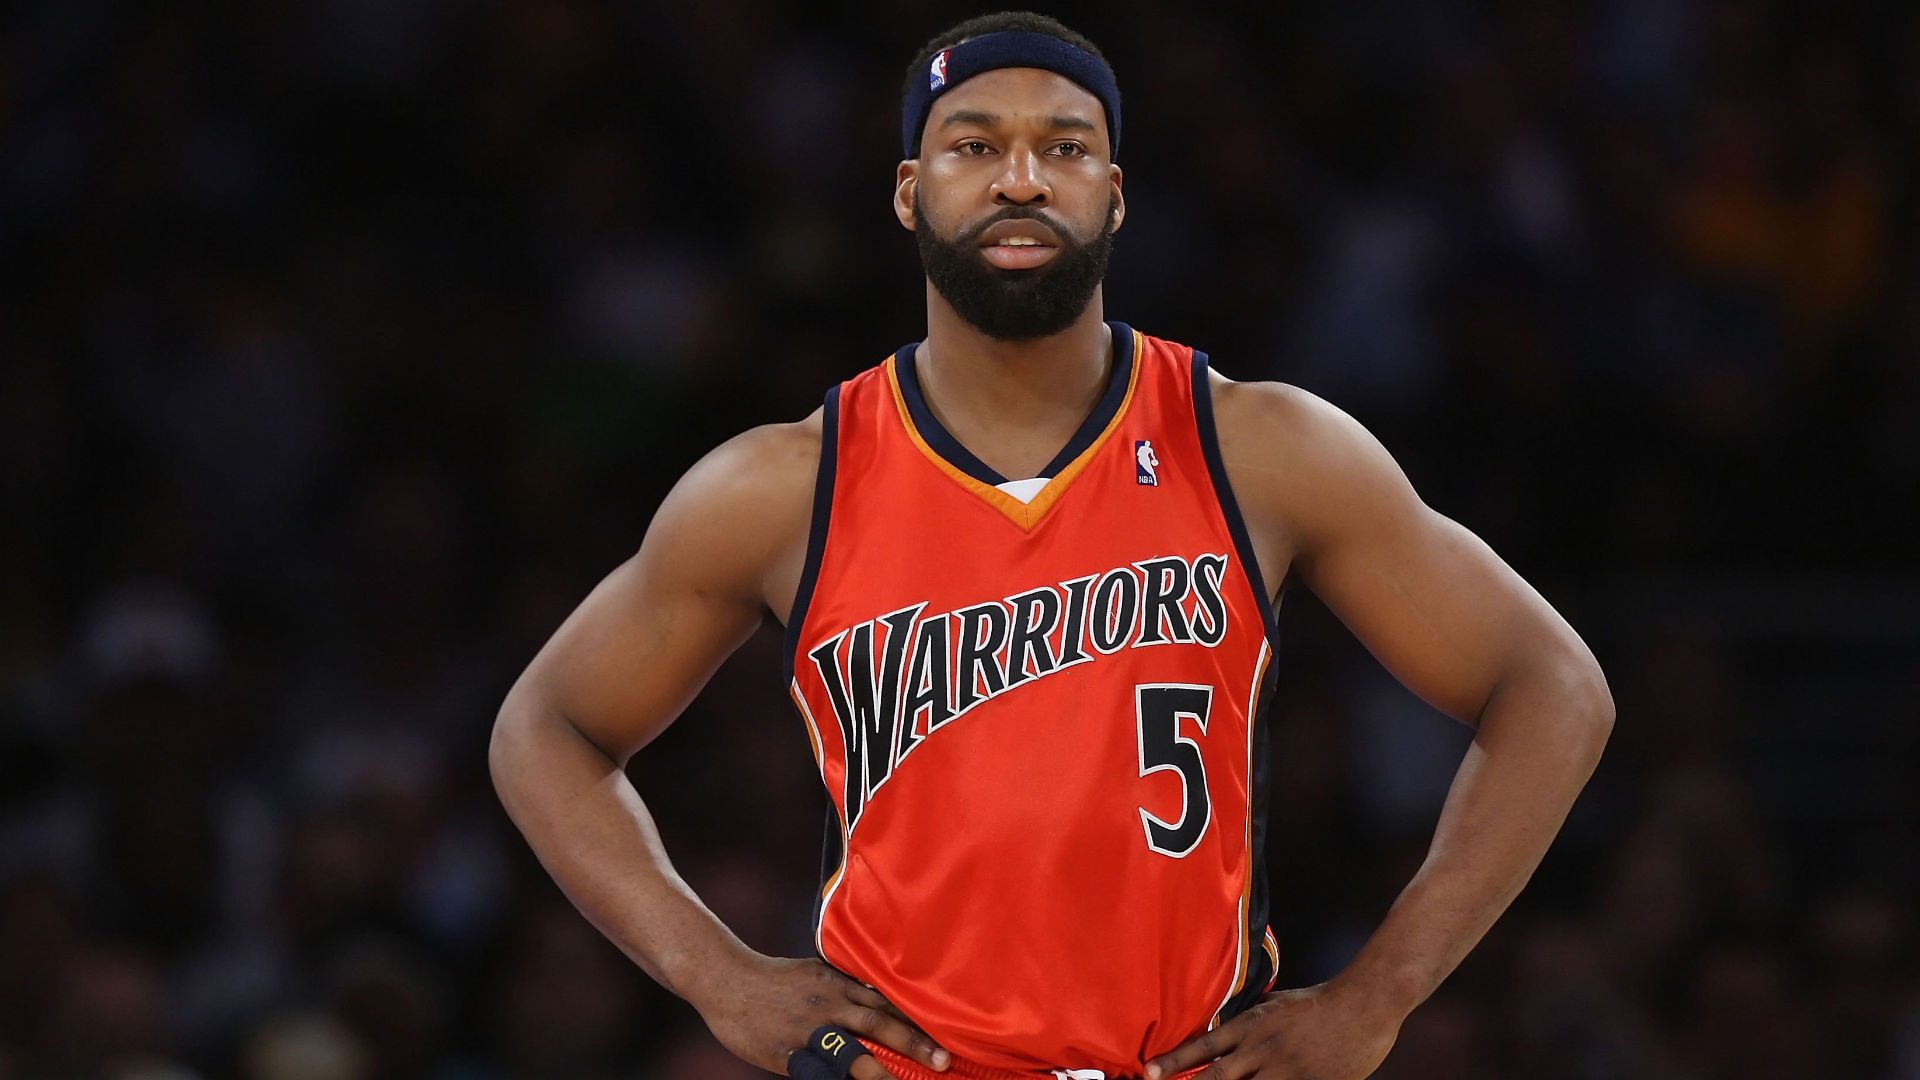 Baron Davis 36 expected to sign with 76ers D League team